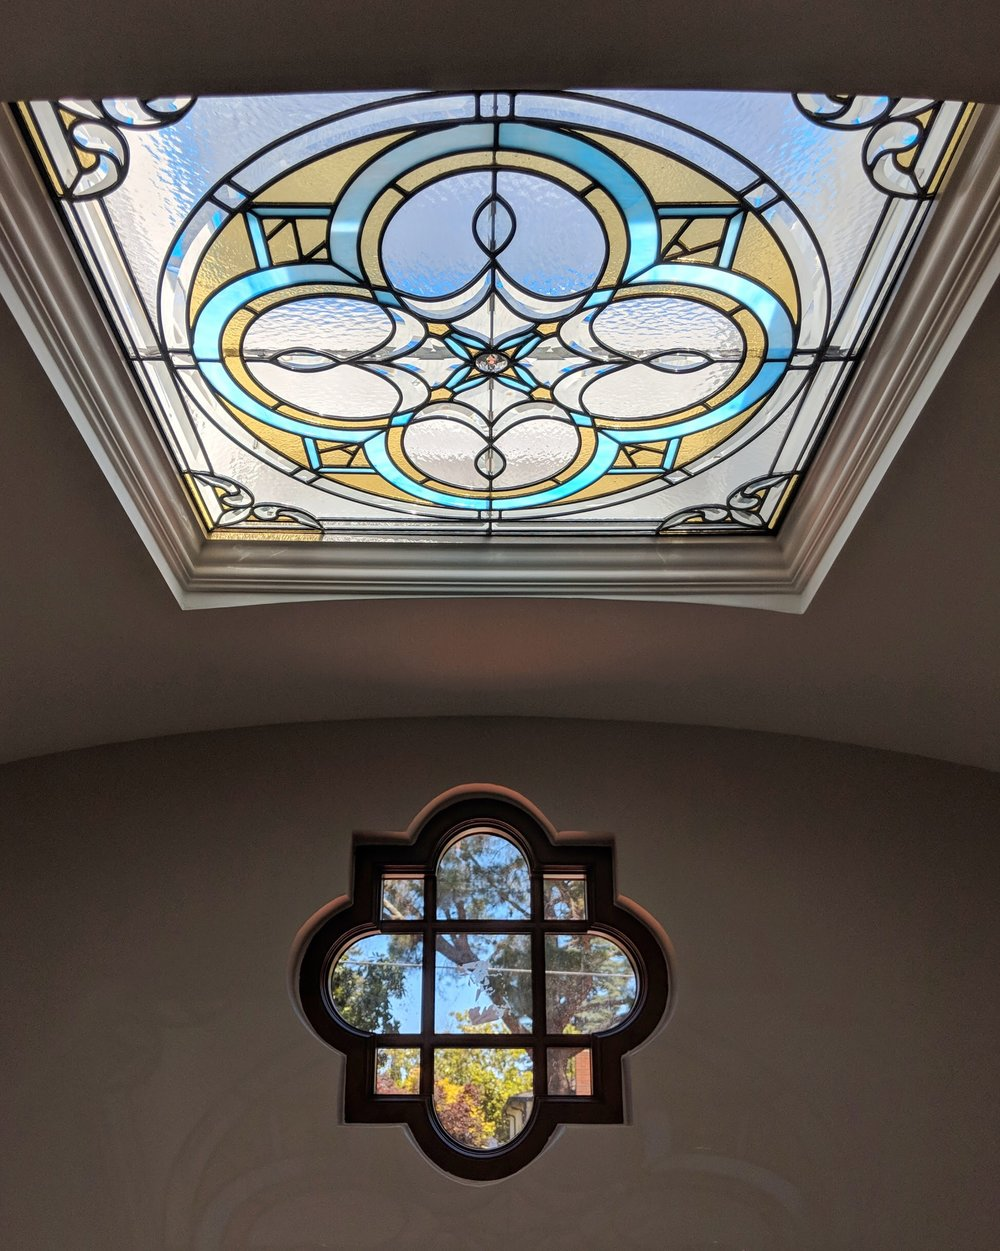 This client wanted to incorporate her family members' initials in the skylight that greets them in their foyer each day. Notice the three A's and the Z in the corners of the central design!